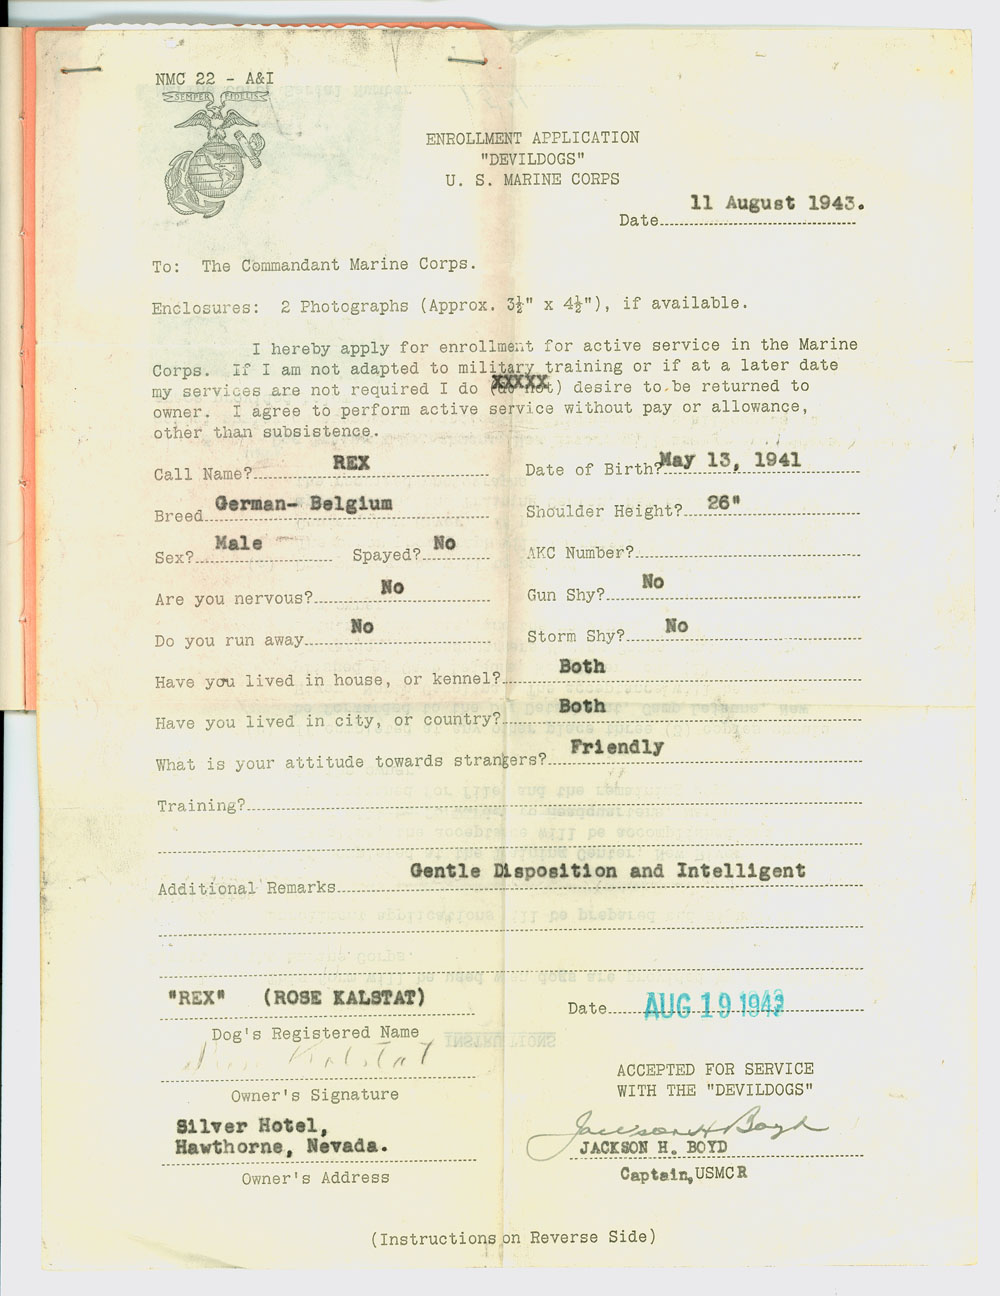 The Enrollment Application Was Designed To Filled Out From The Dog S  Perspective. (Records Of The United States Marine Corps, Rg 127)